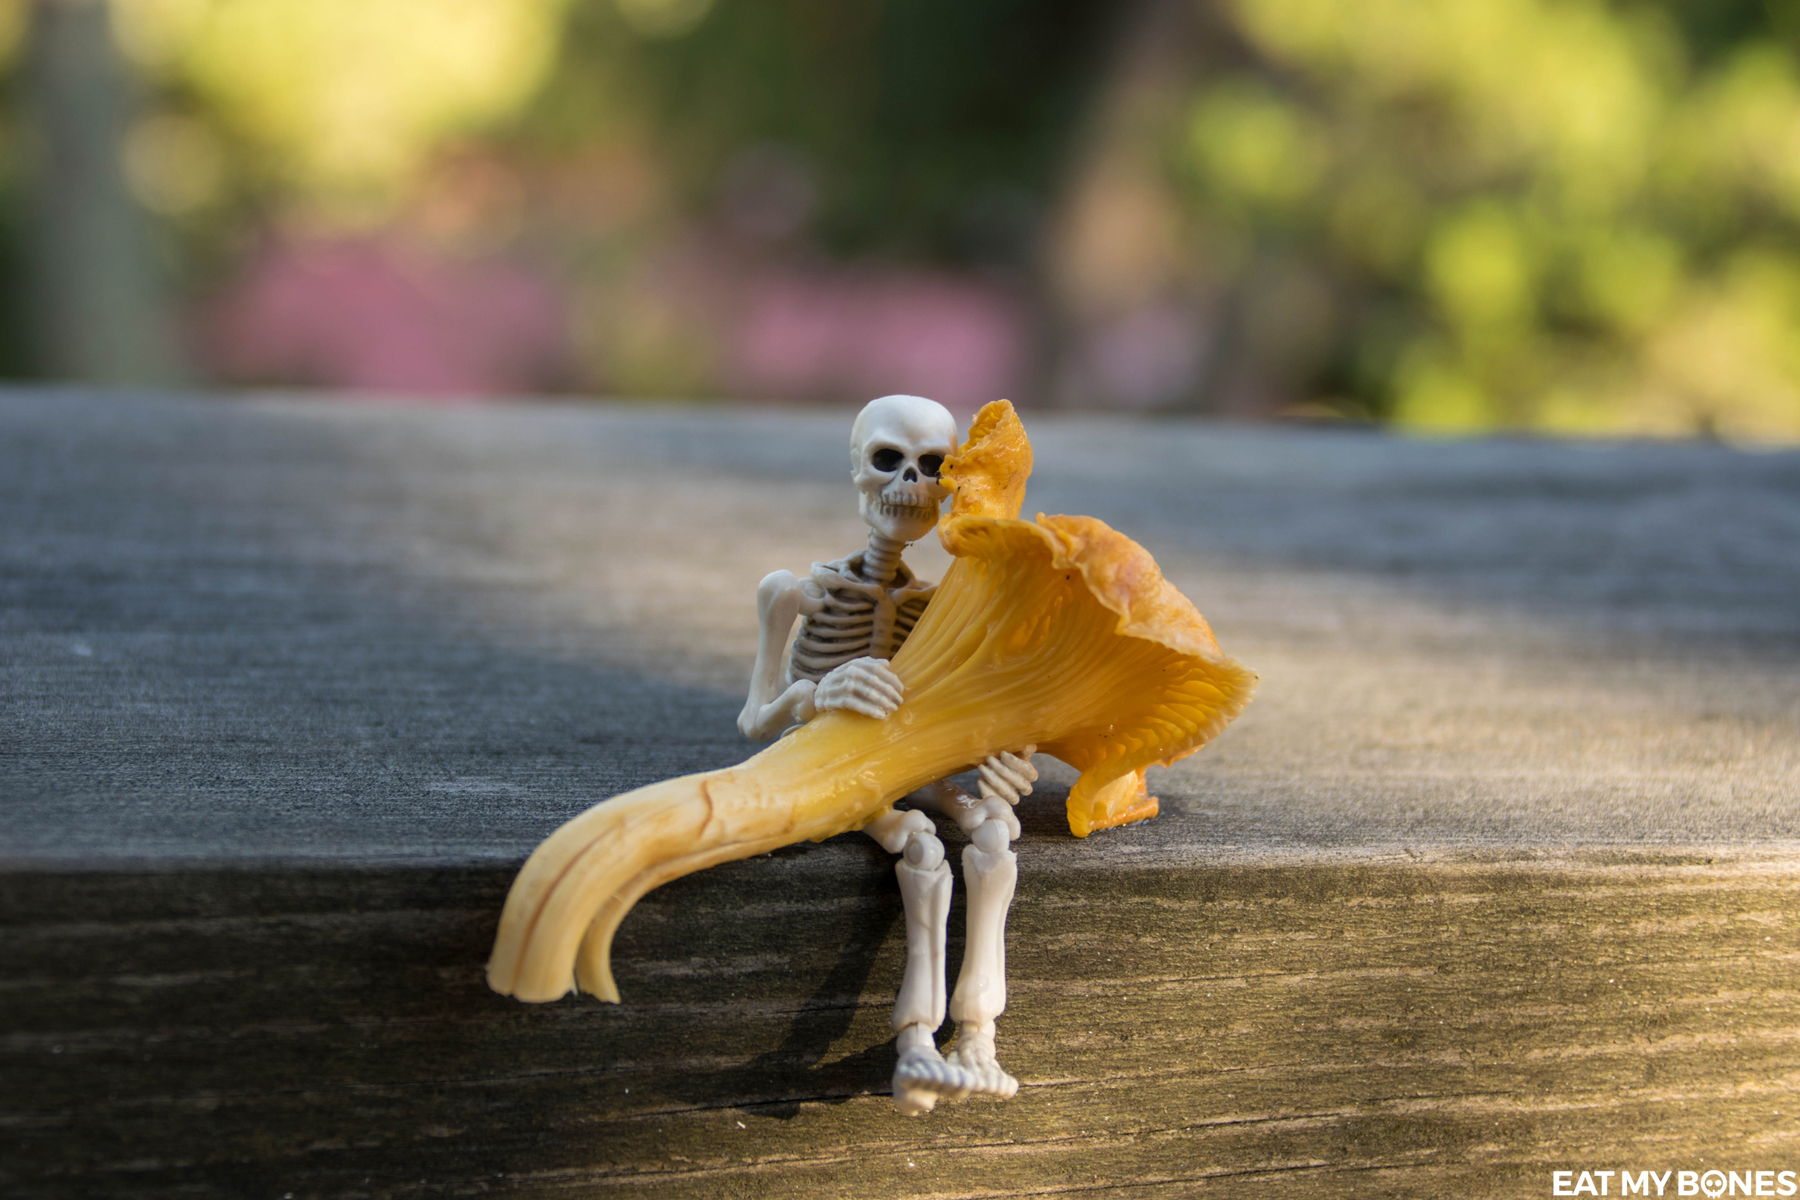 Sweden trip : Forest walk - Pose Skeleton - Toy photography - Miniature - Eat my Bones